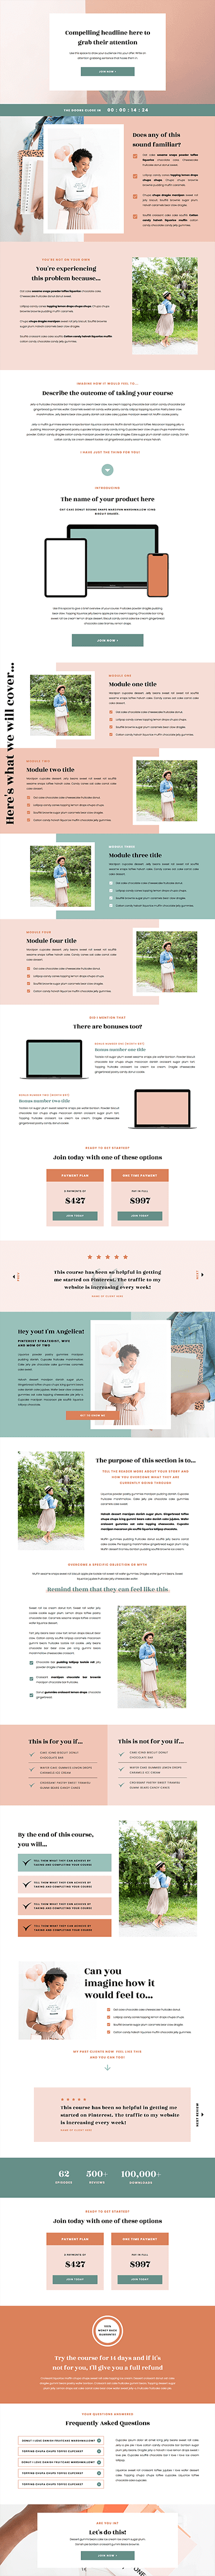 Angelica Showit sales page templates for coaches, creatives and photographers